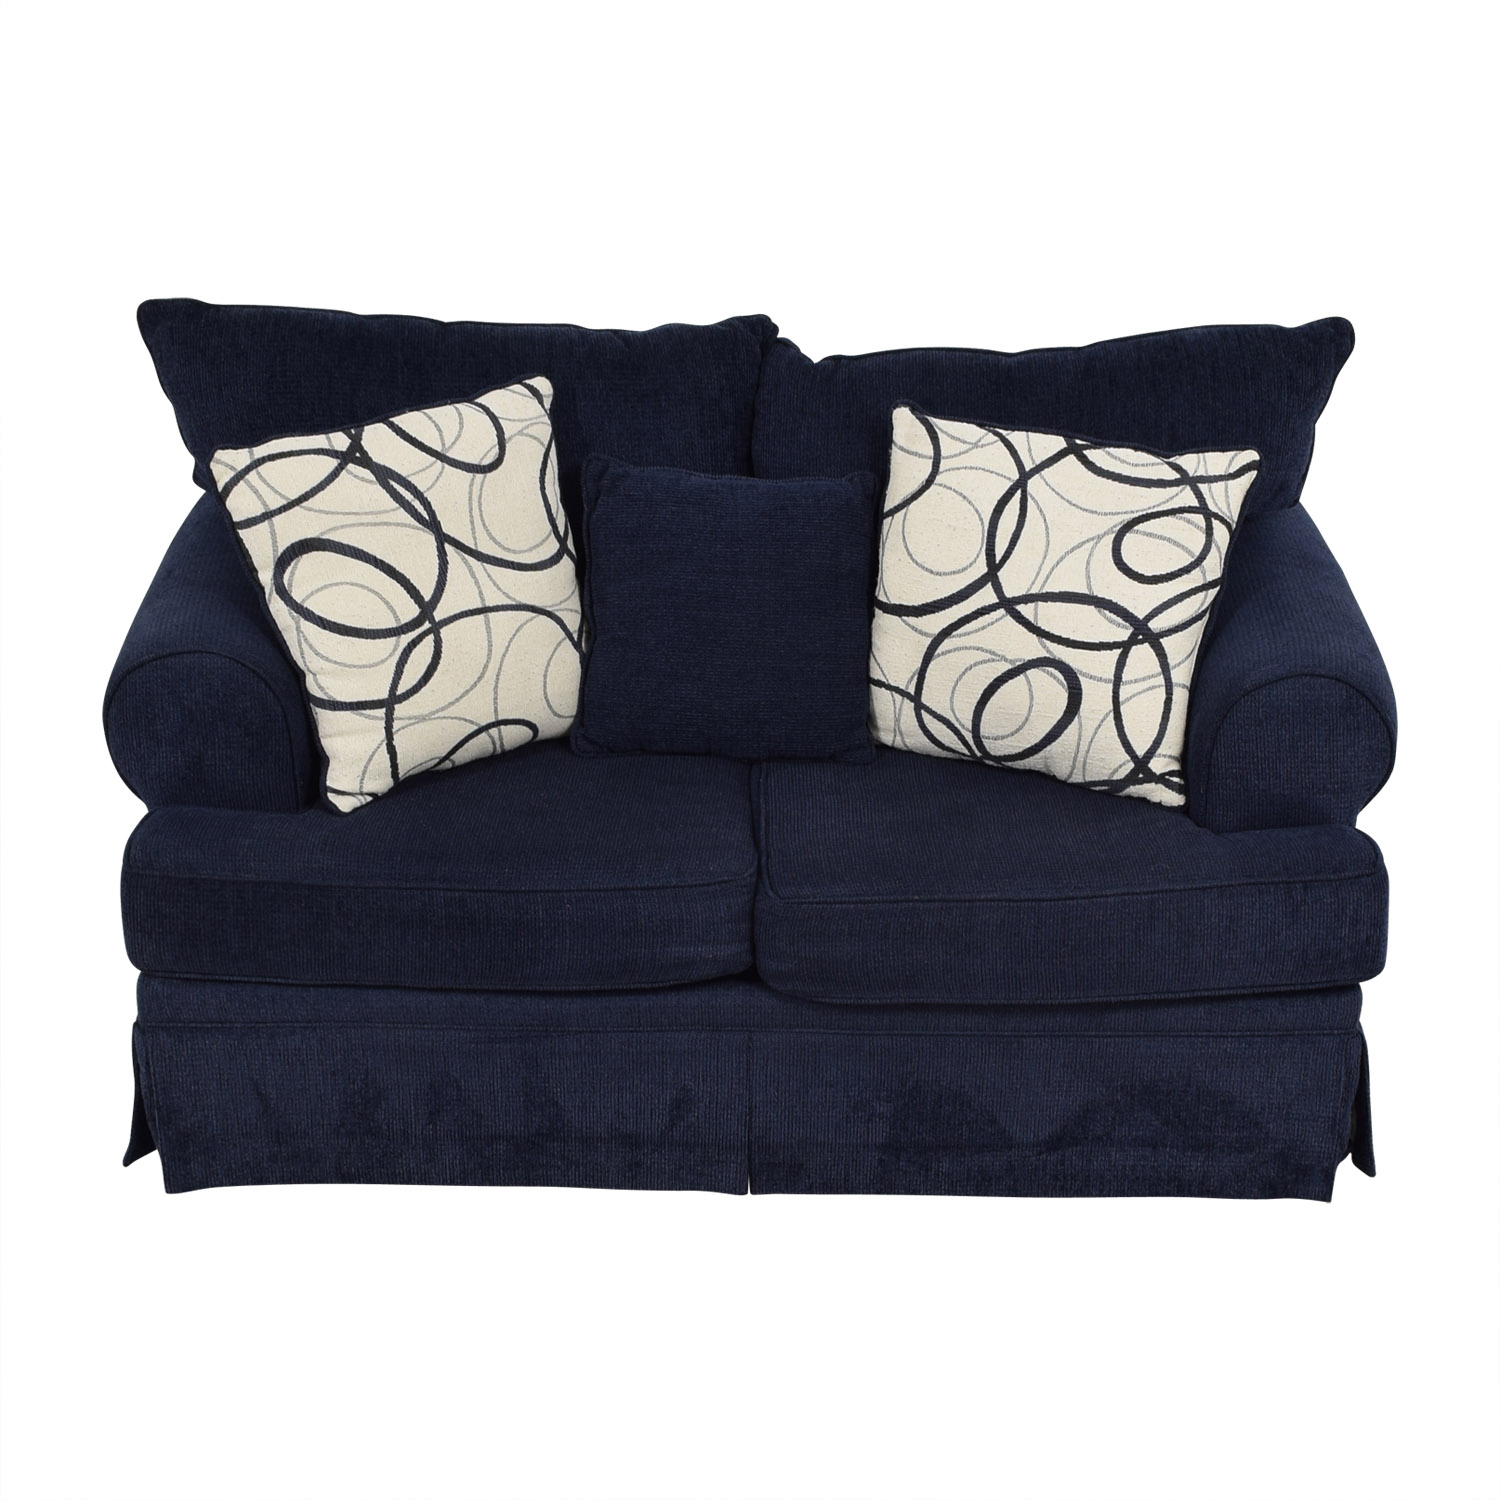 shop Bob's Furniture Bob's Furniture Mystic Navy Loveseat with Pillows online